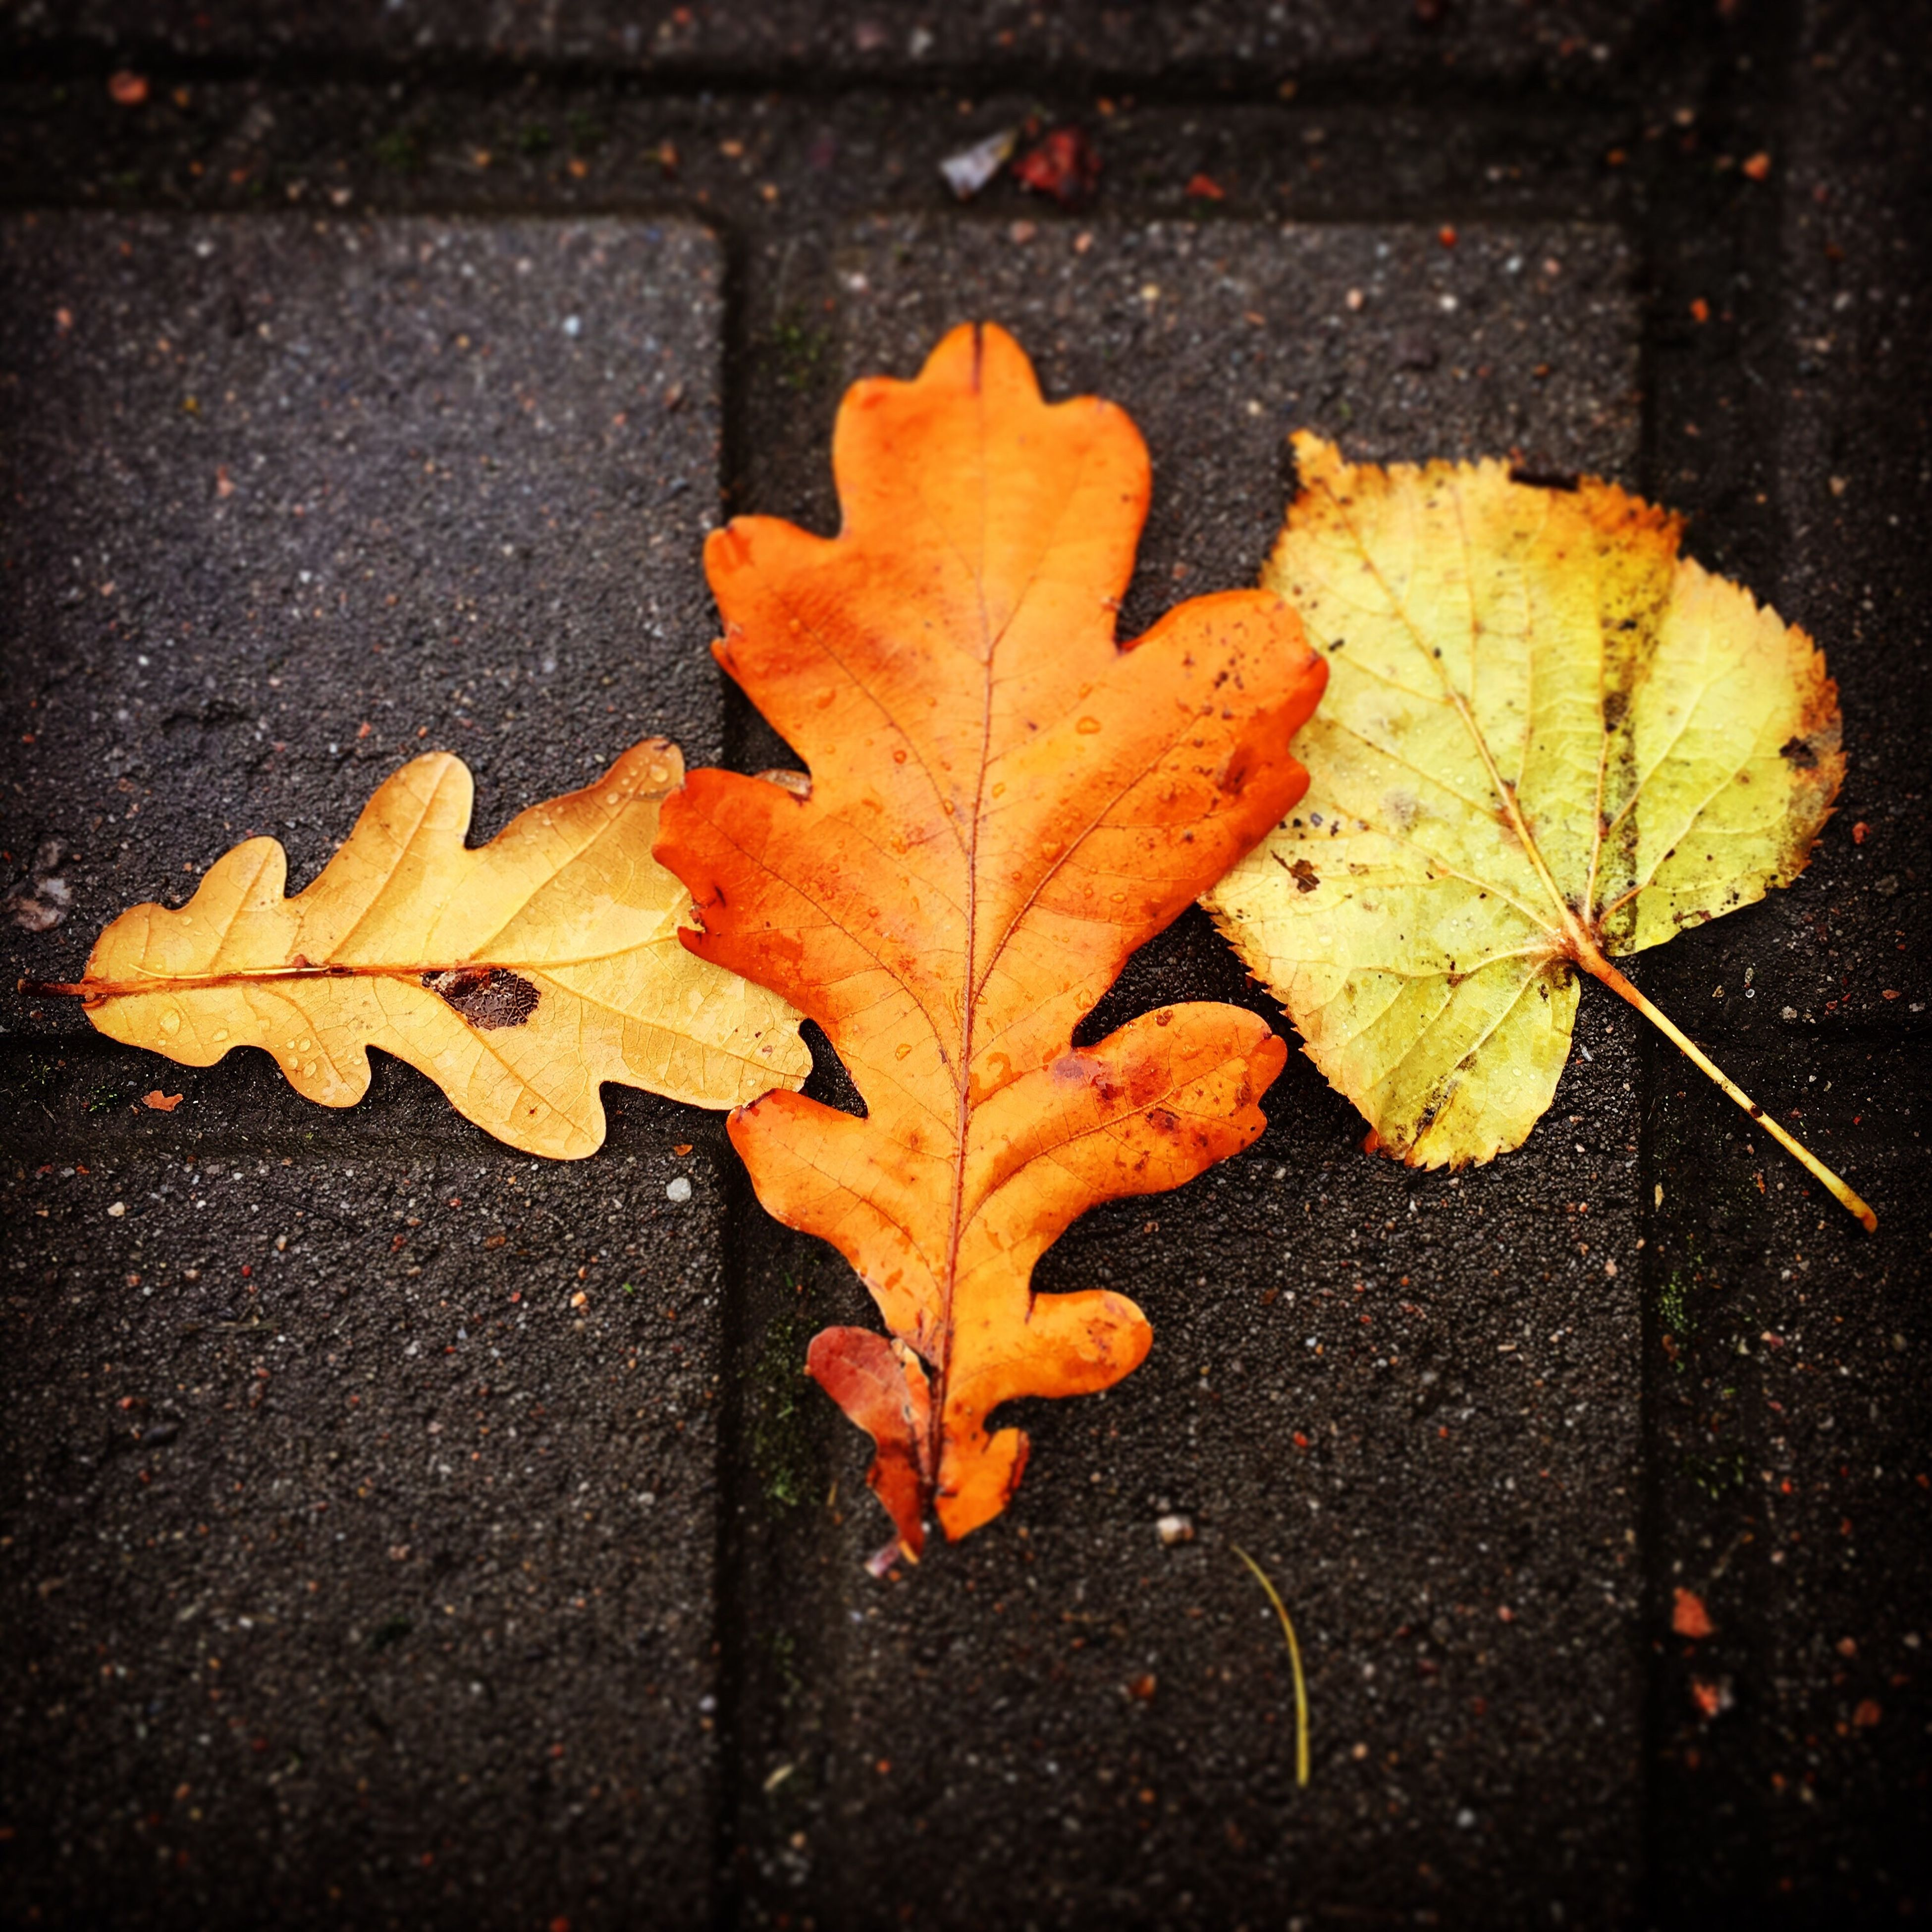 leaf, autumn, change, season, dry, maple leaf, close-up, orange color, street, road, natural condition, tranquility, nature, day, fragility, beauty in nature, scenics, no people, dried plant, vibrant color, yellow color